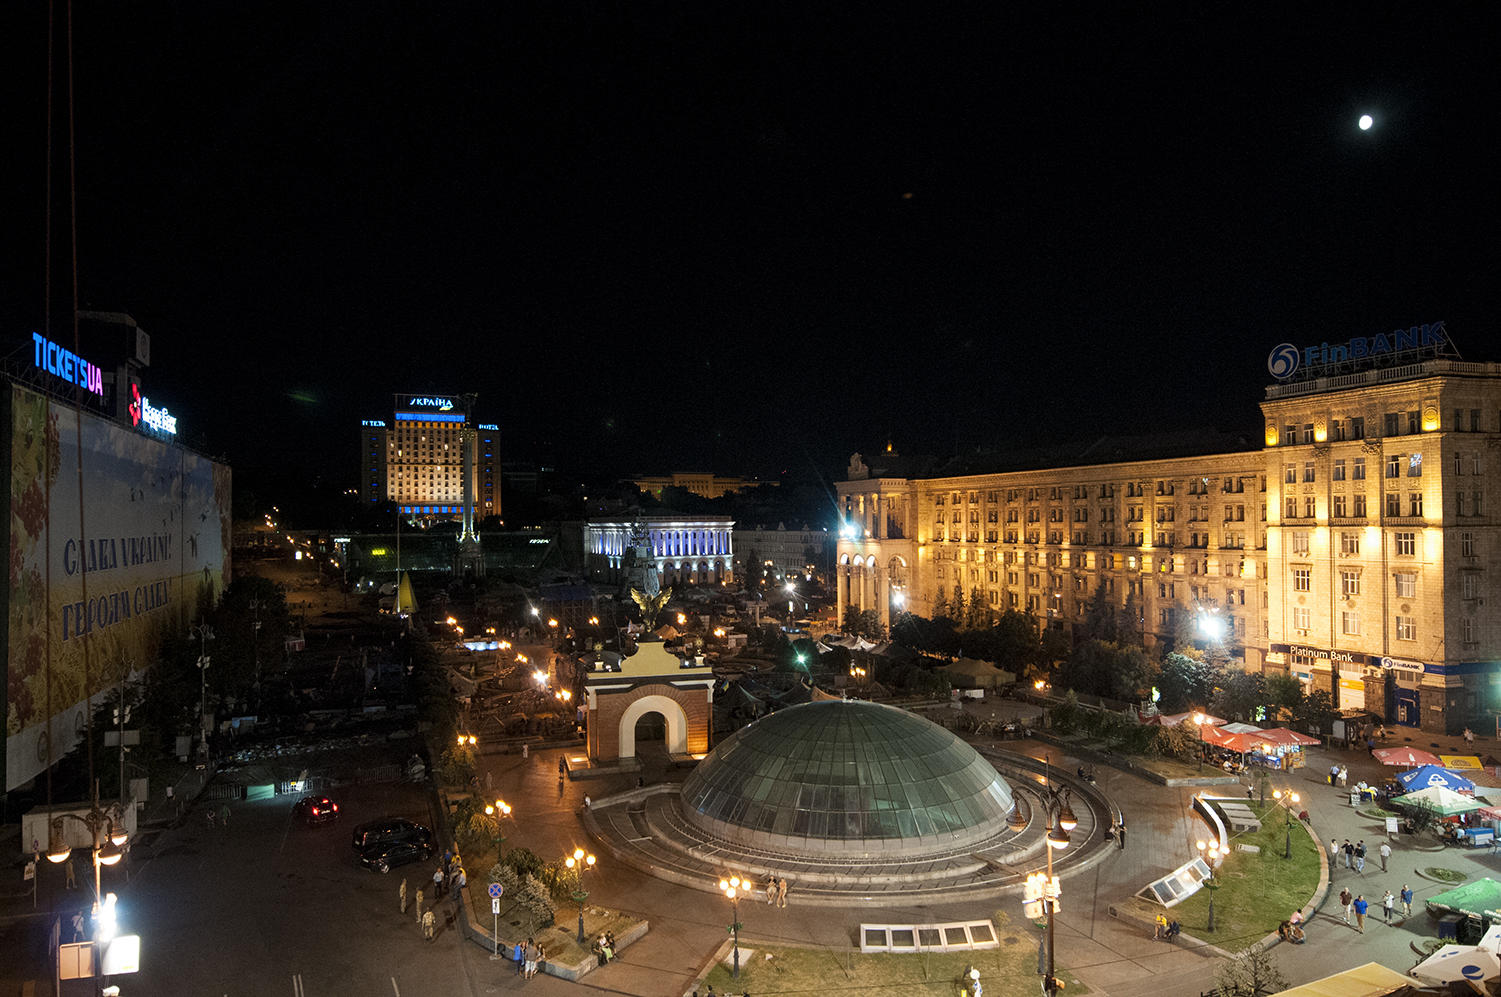 Maidan square during the night